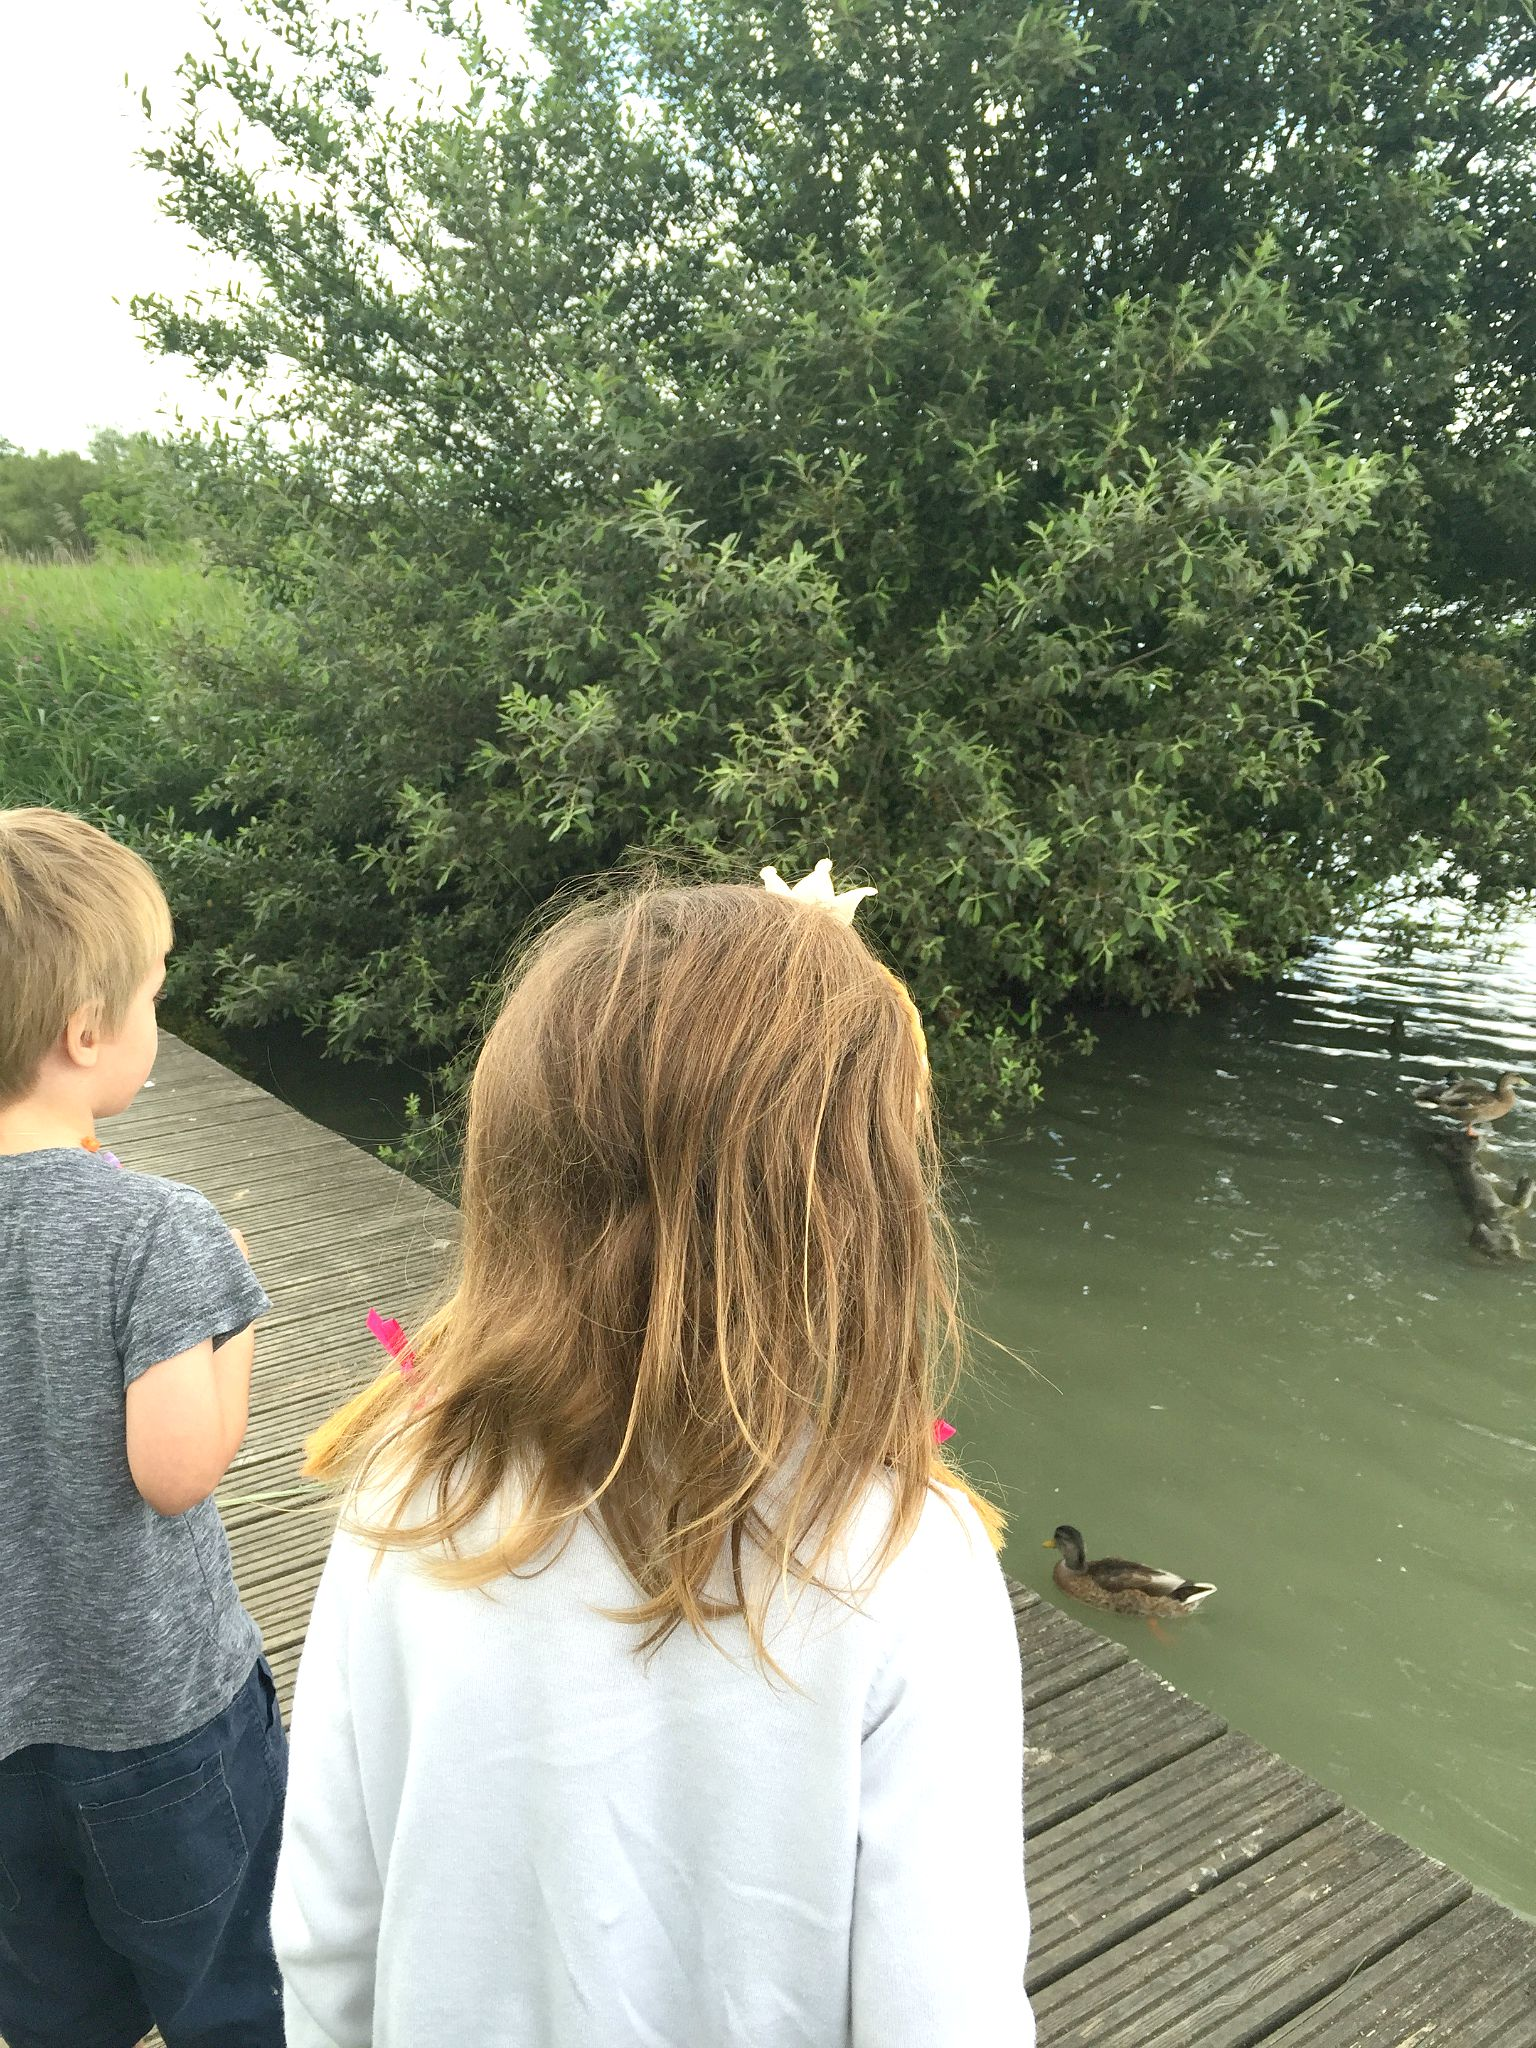 Cosmeston Lakes Country Park and Medieval Village